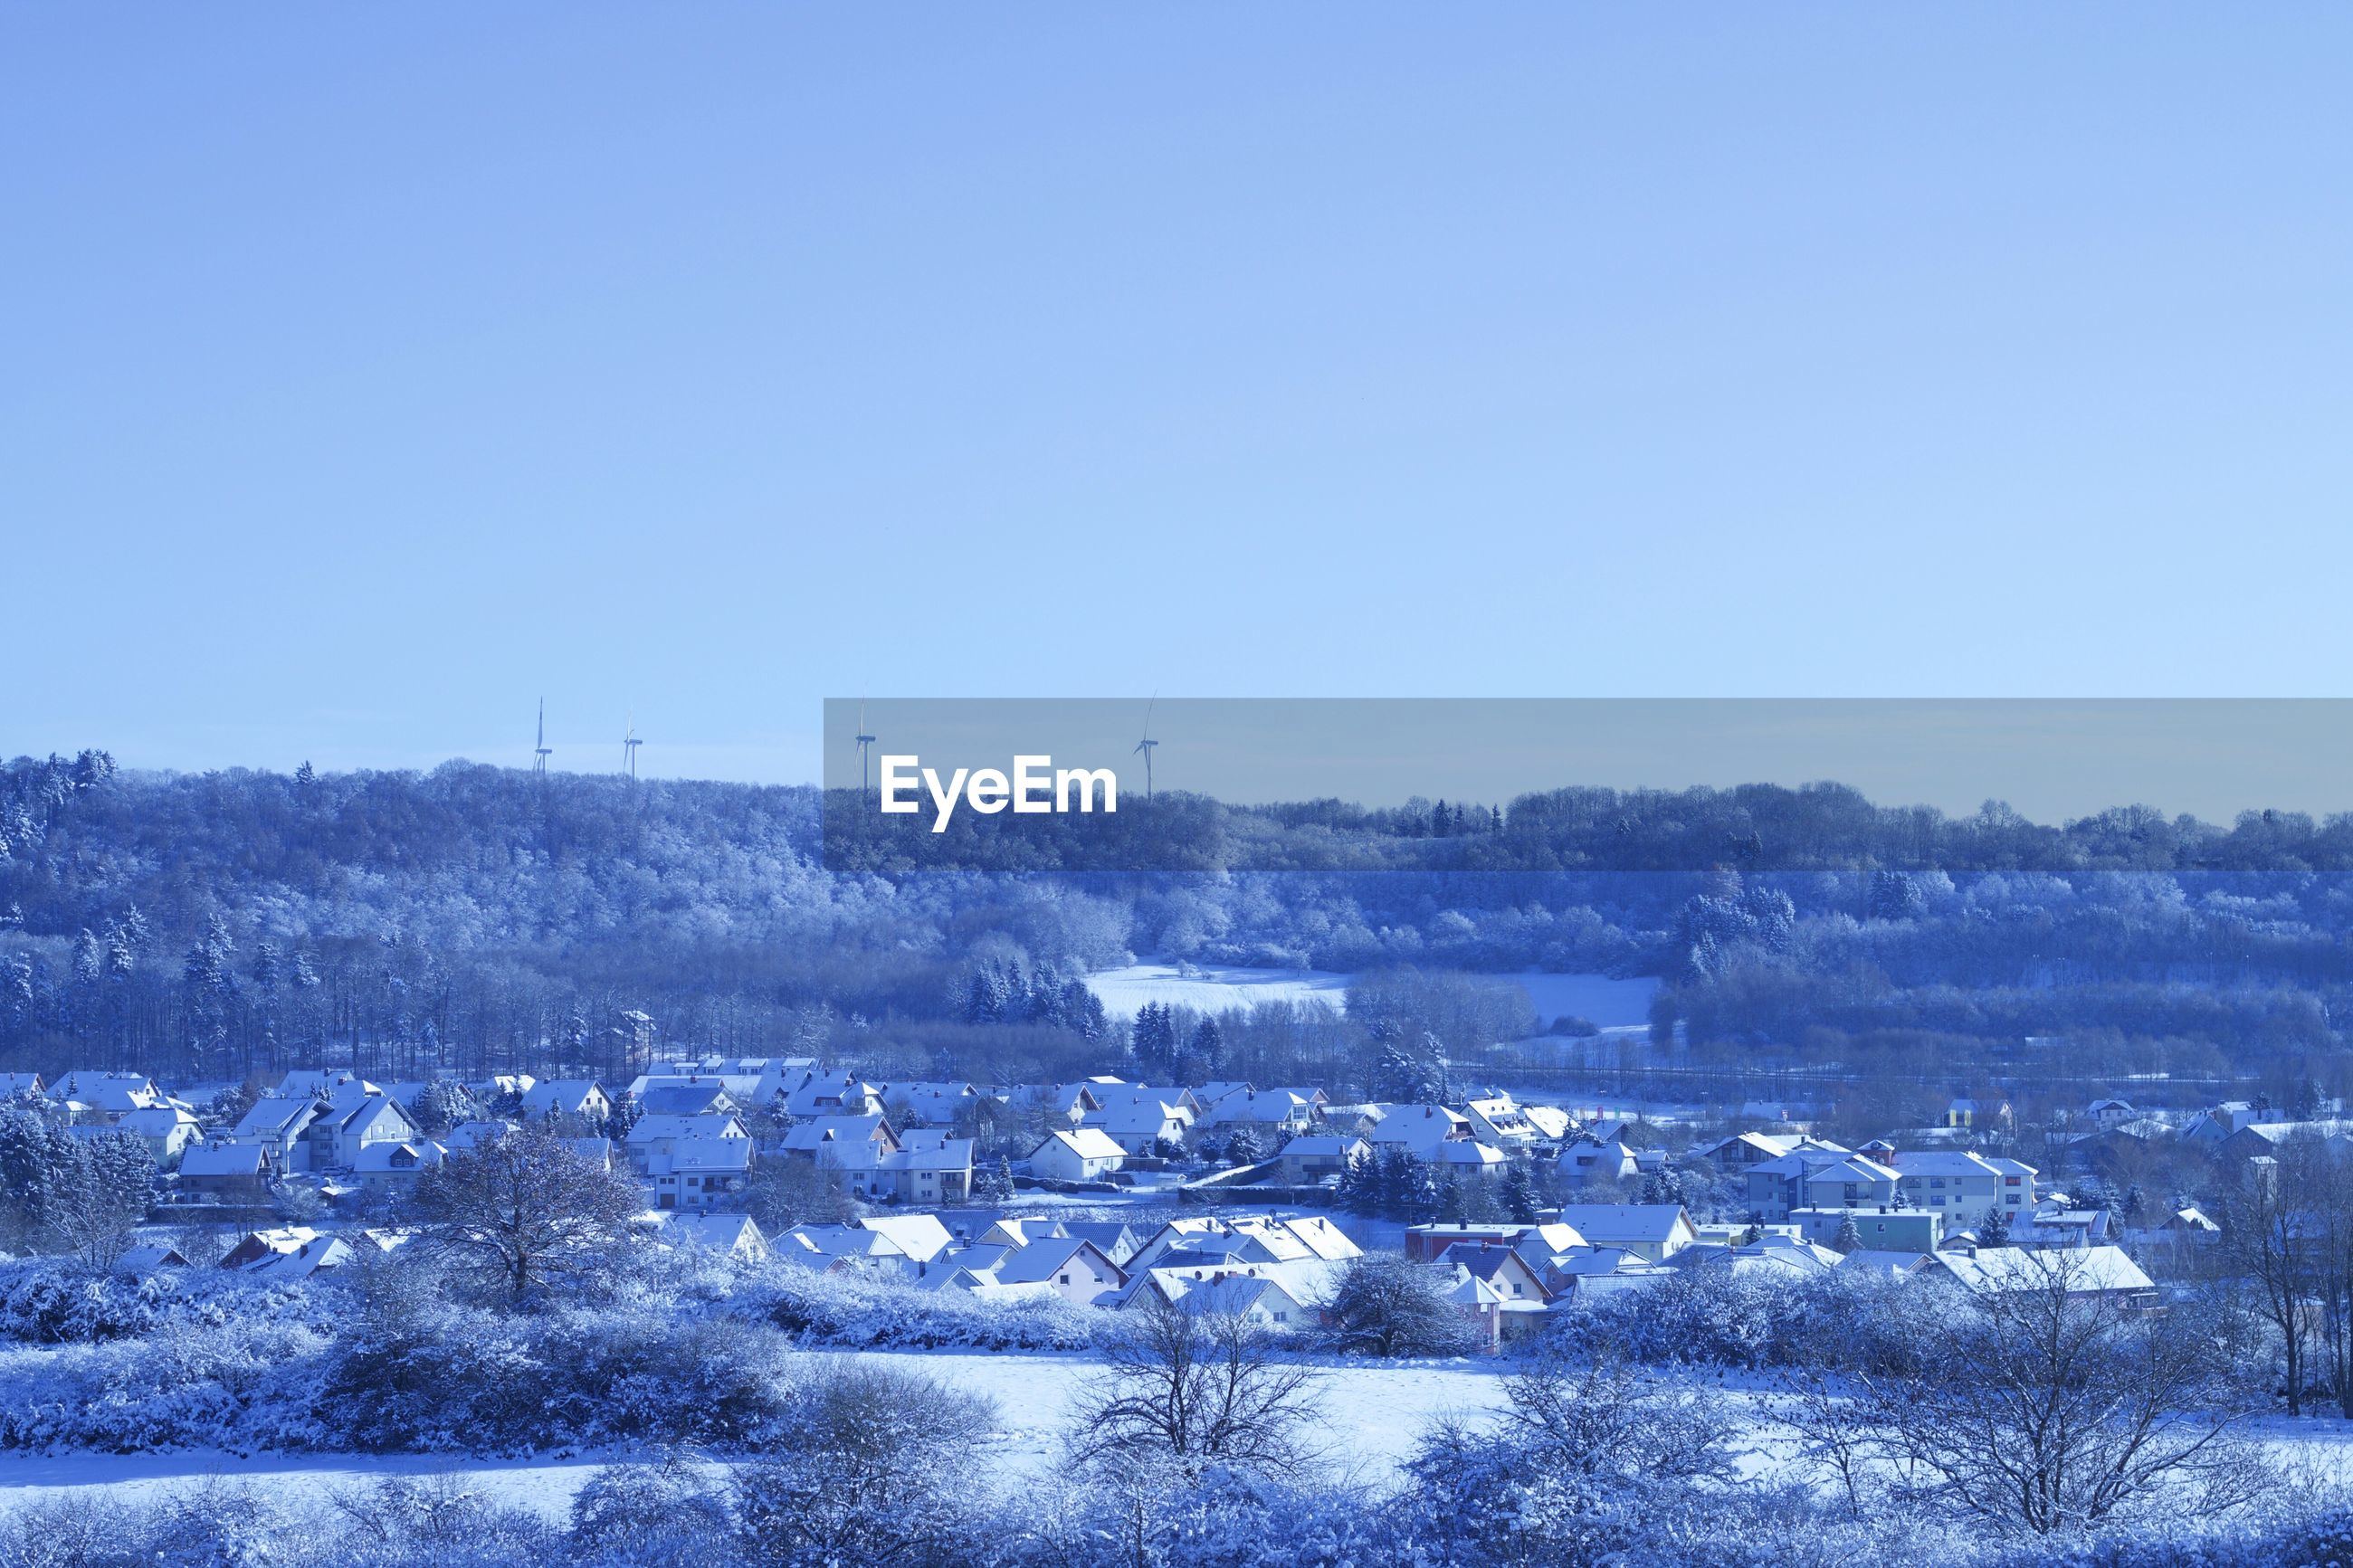 SCENIC VIEW OF WINTER LANDSCAPE AGAINST CLEAR SKY